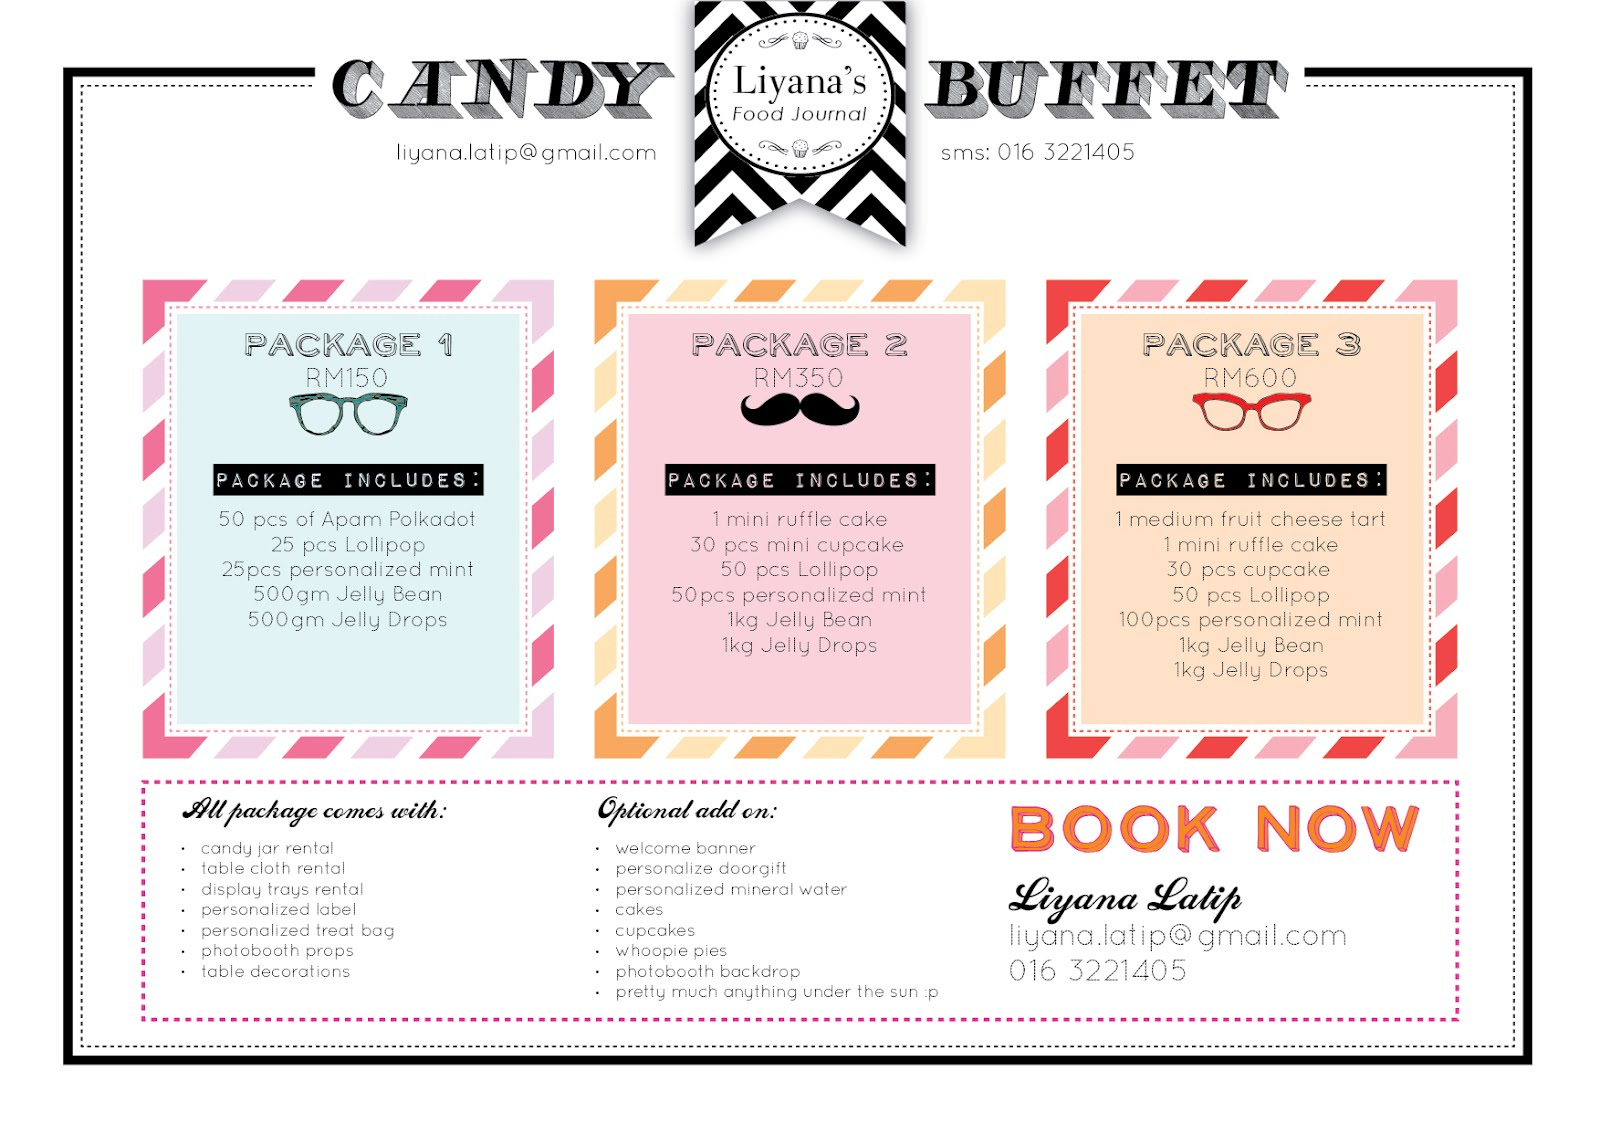 Liyana's Food Journal: Candy Buffet available with LFJ now :)